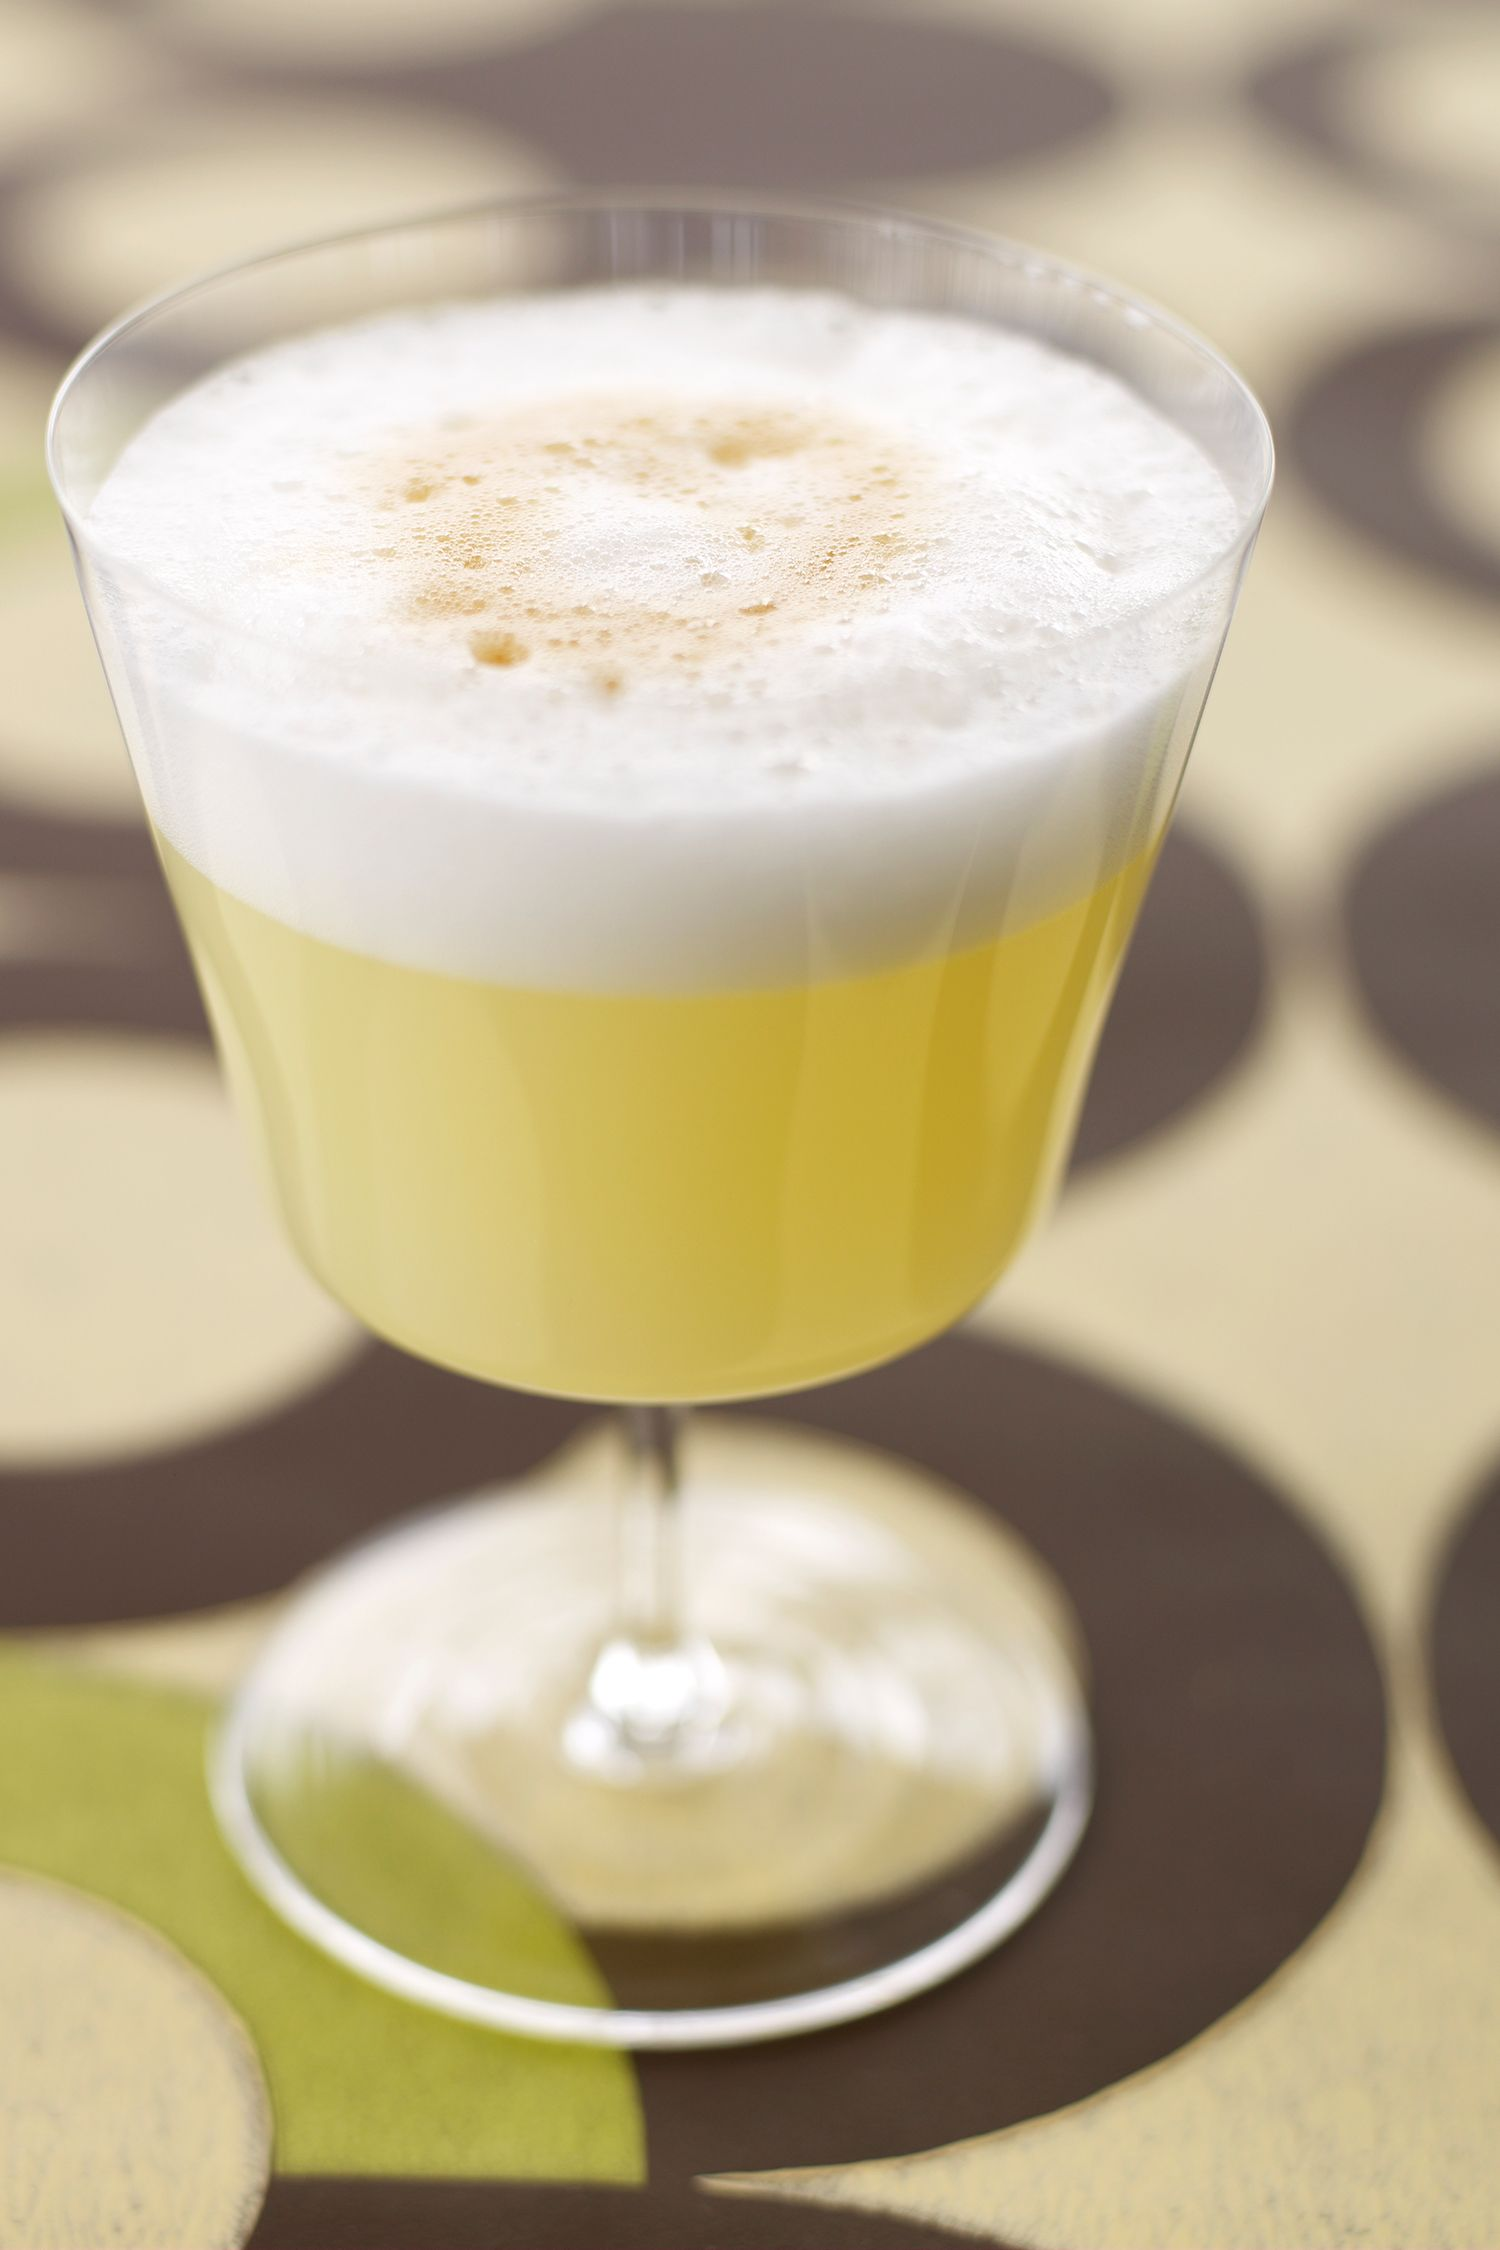 The Million Dollar Cocktail is a fantastic drink in true classic style that adds a bit of pineapple to a gin-vermouth-egg combo. It's a pure delight!